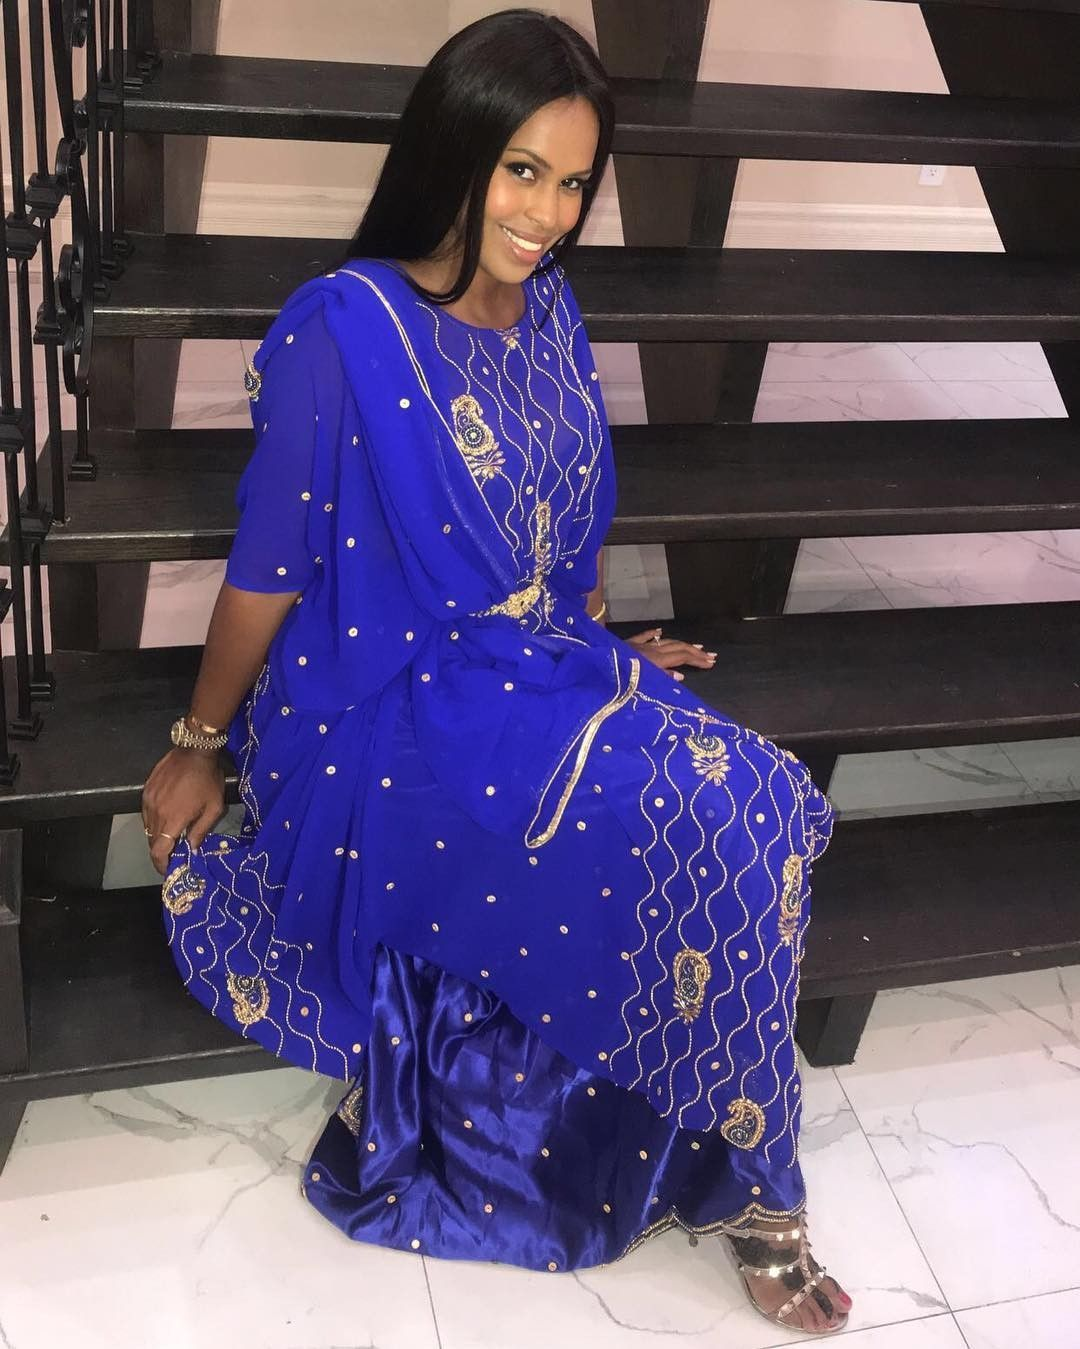 Natural Somali Somalis In 2019 Wedding Dirac - Year of Clean